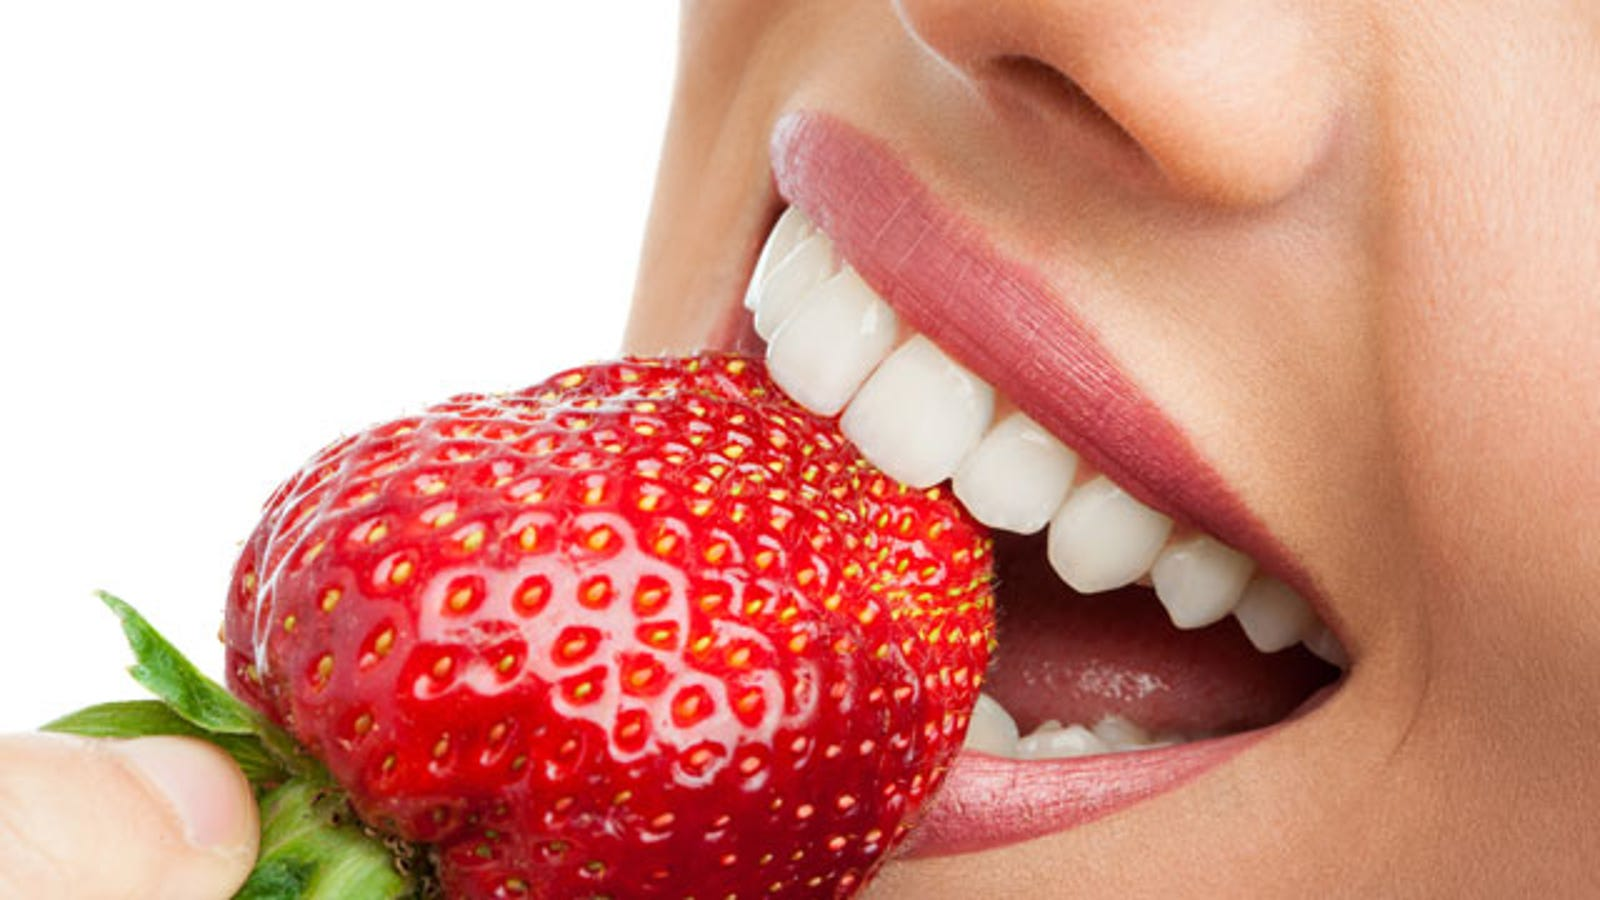 Whiten Teeth Naturally by Eating More Strawberries